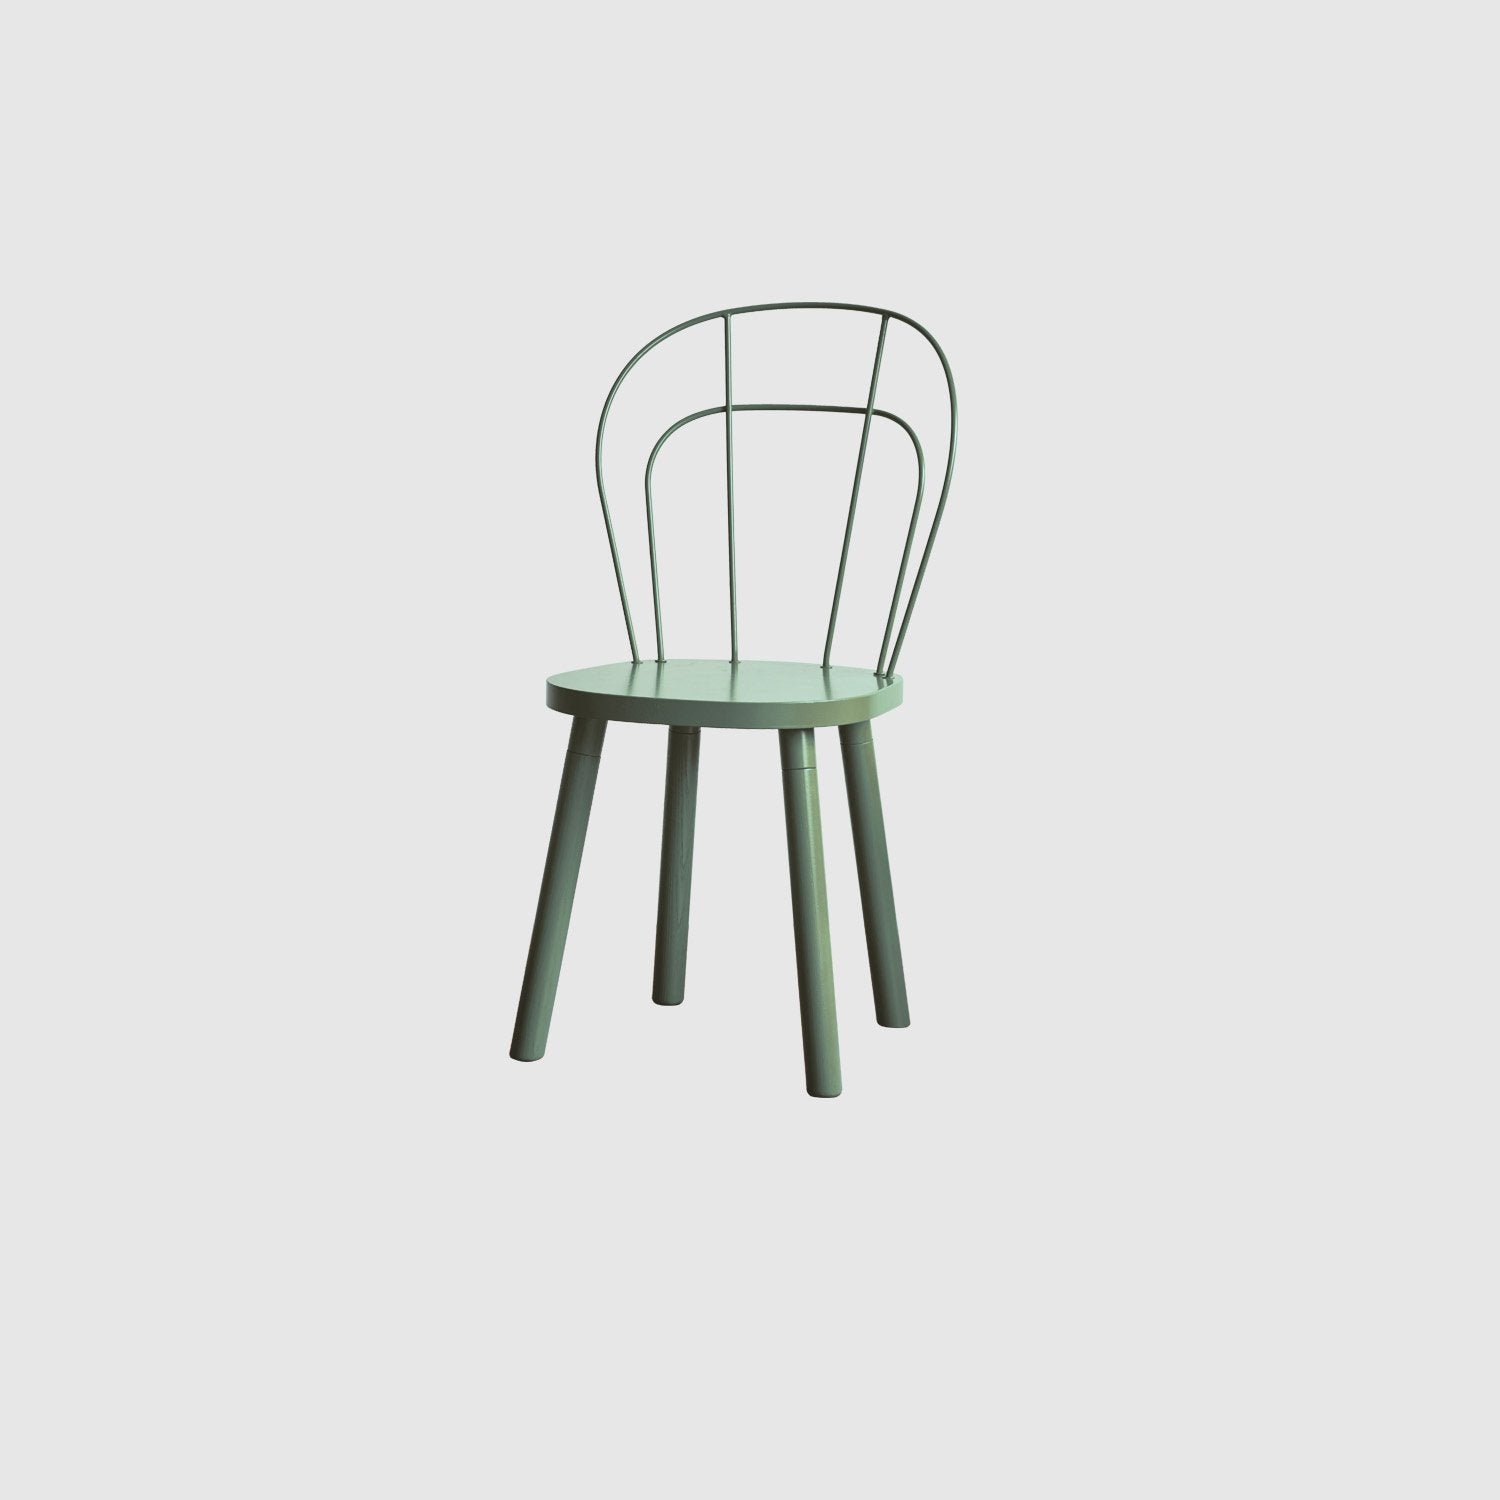 product-seating-gry-_0104_partridge-blockout-dustyolive-chair-deepetch-hr_png_d6fb5664-37d9-45c0-b537-c426bae2d8be_1920x